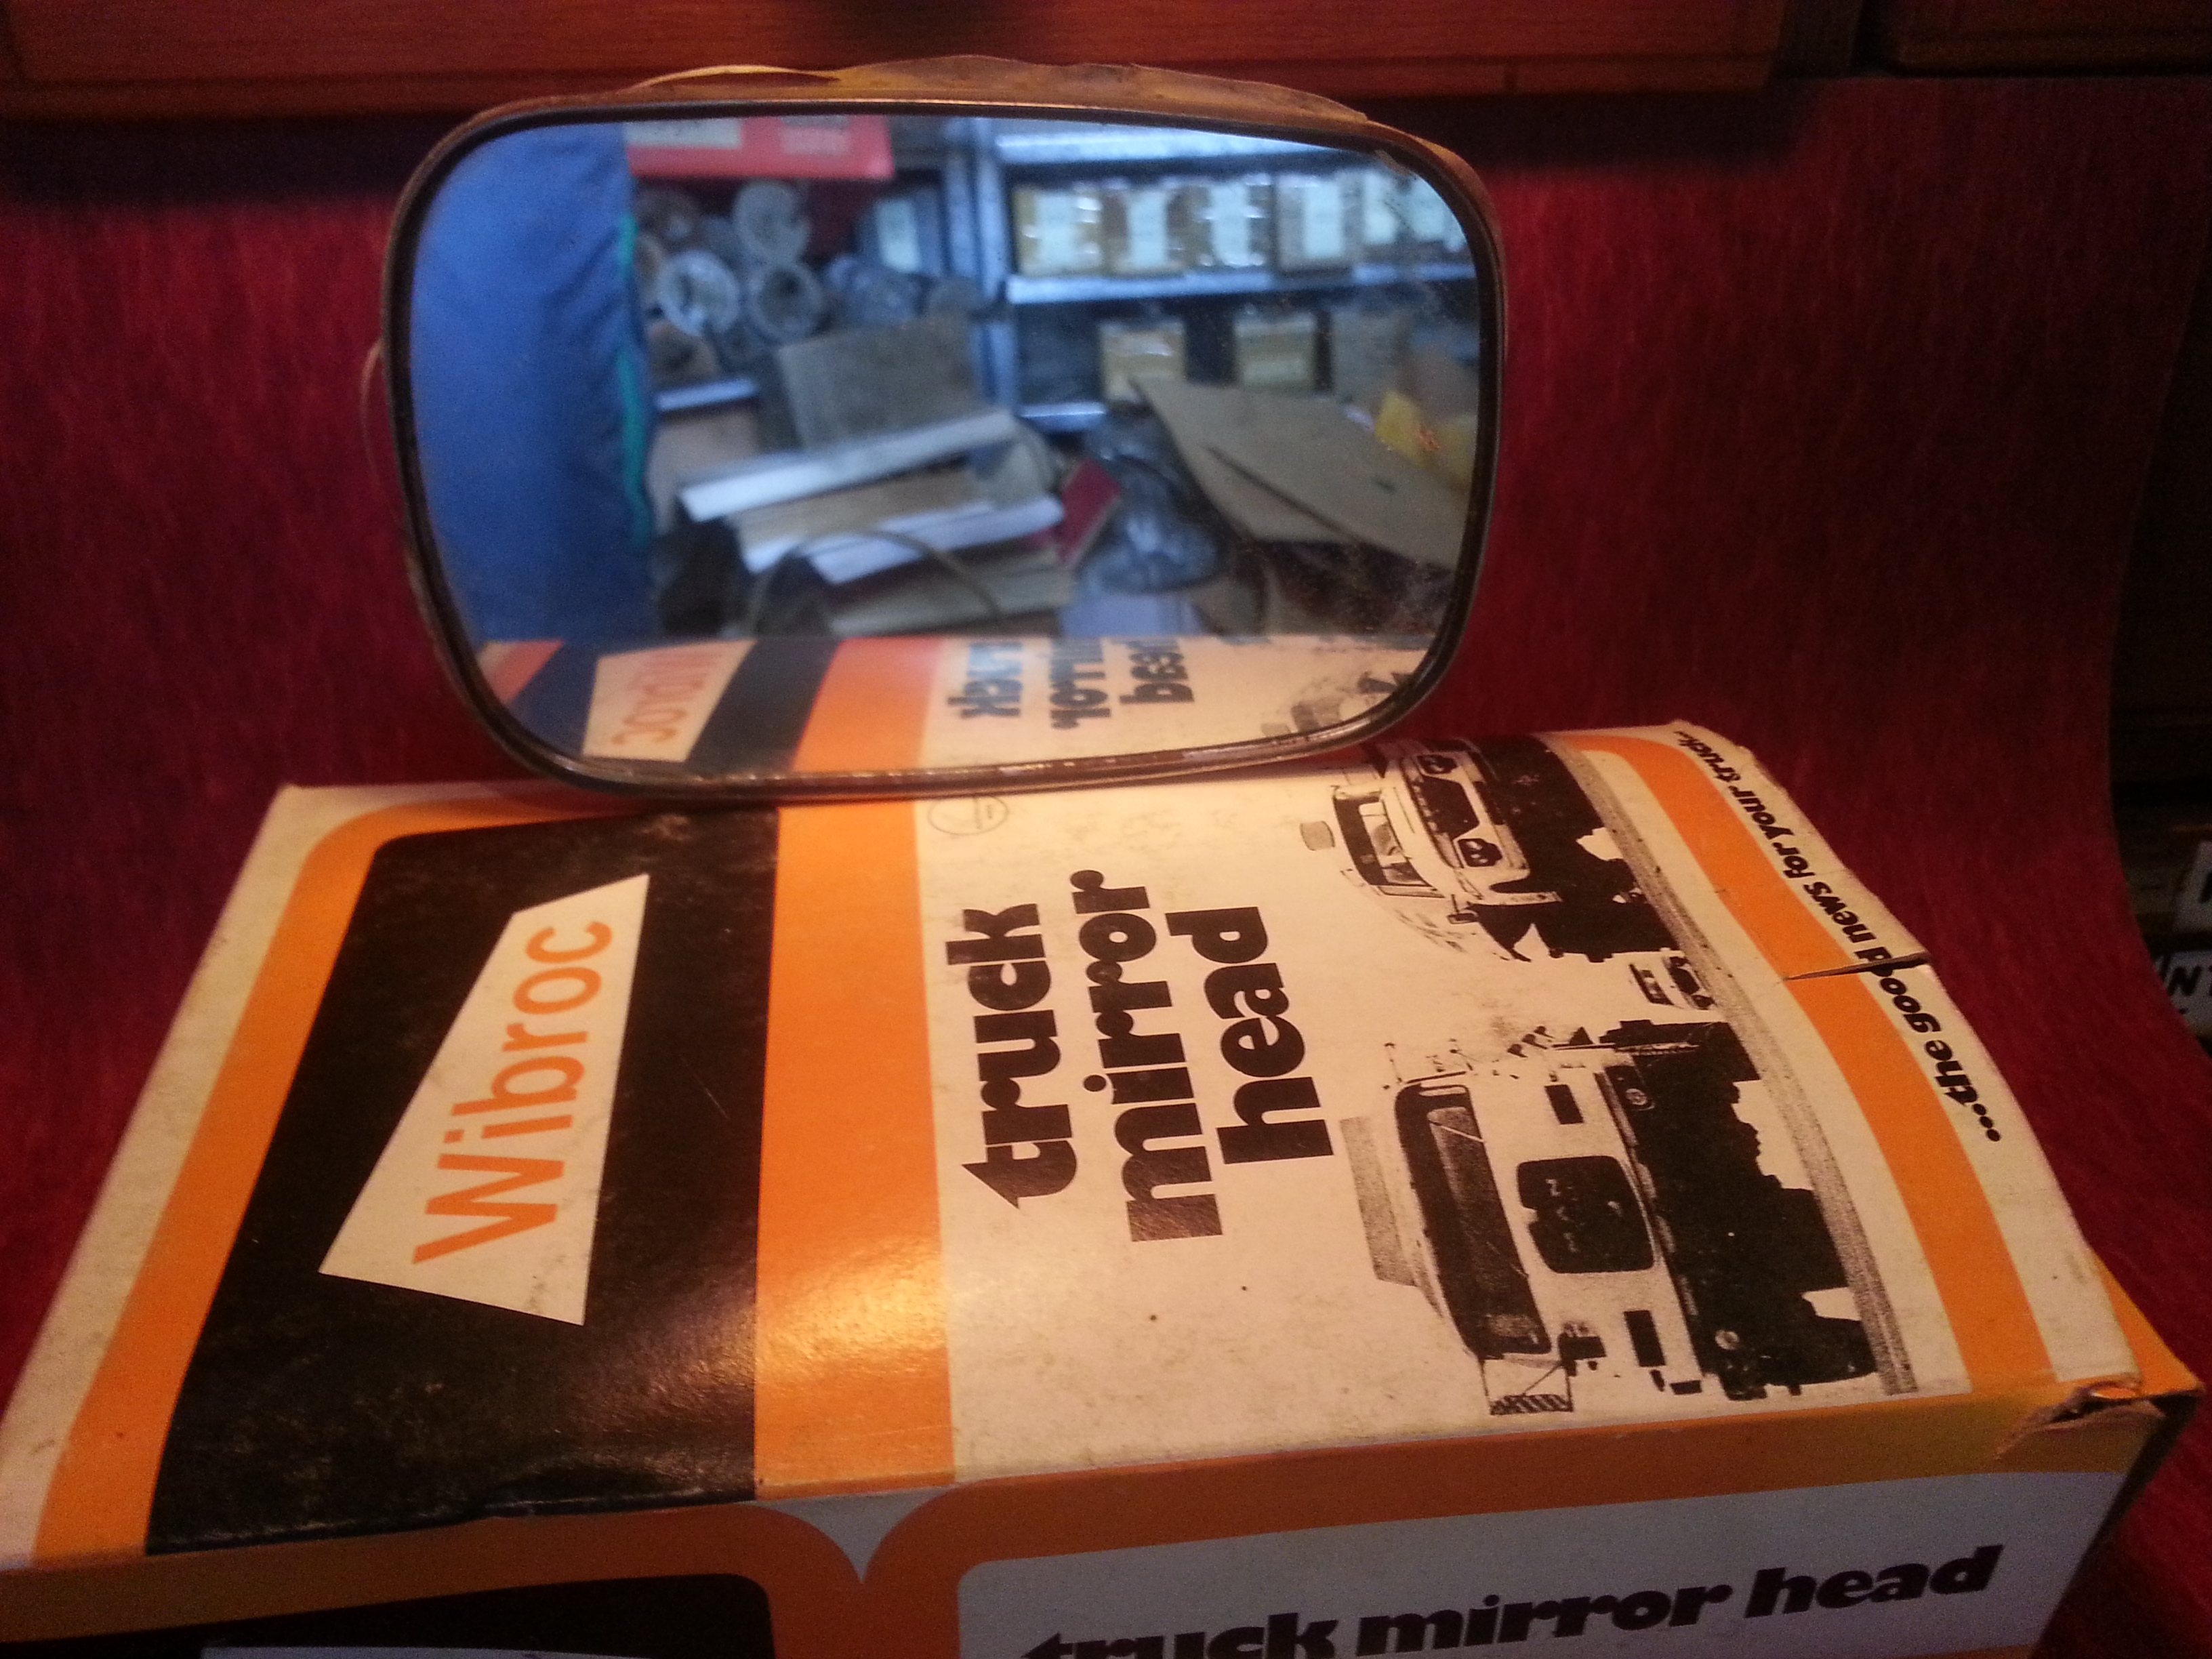 NOS Wibroc aftermarket mirror head